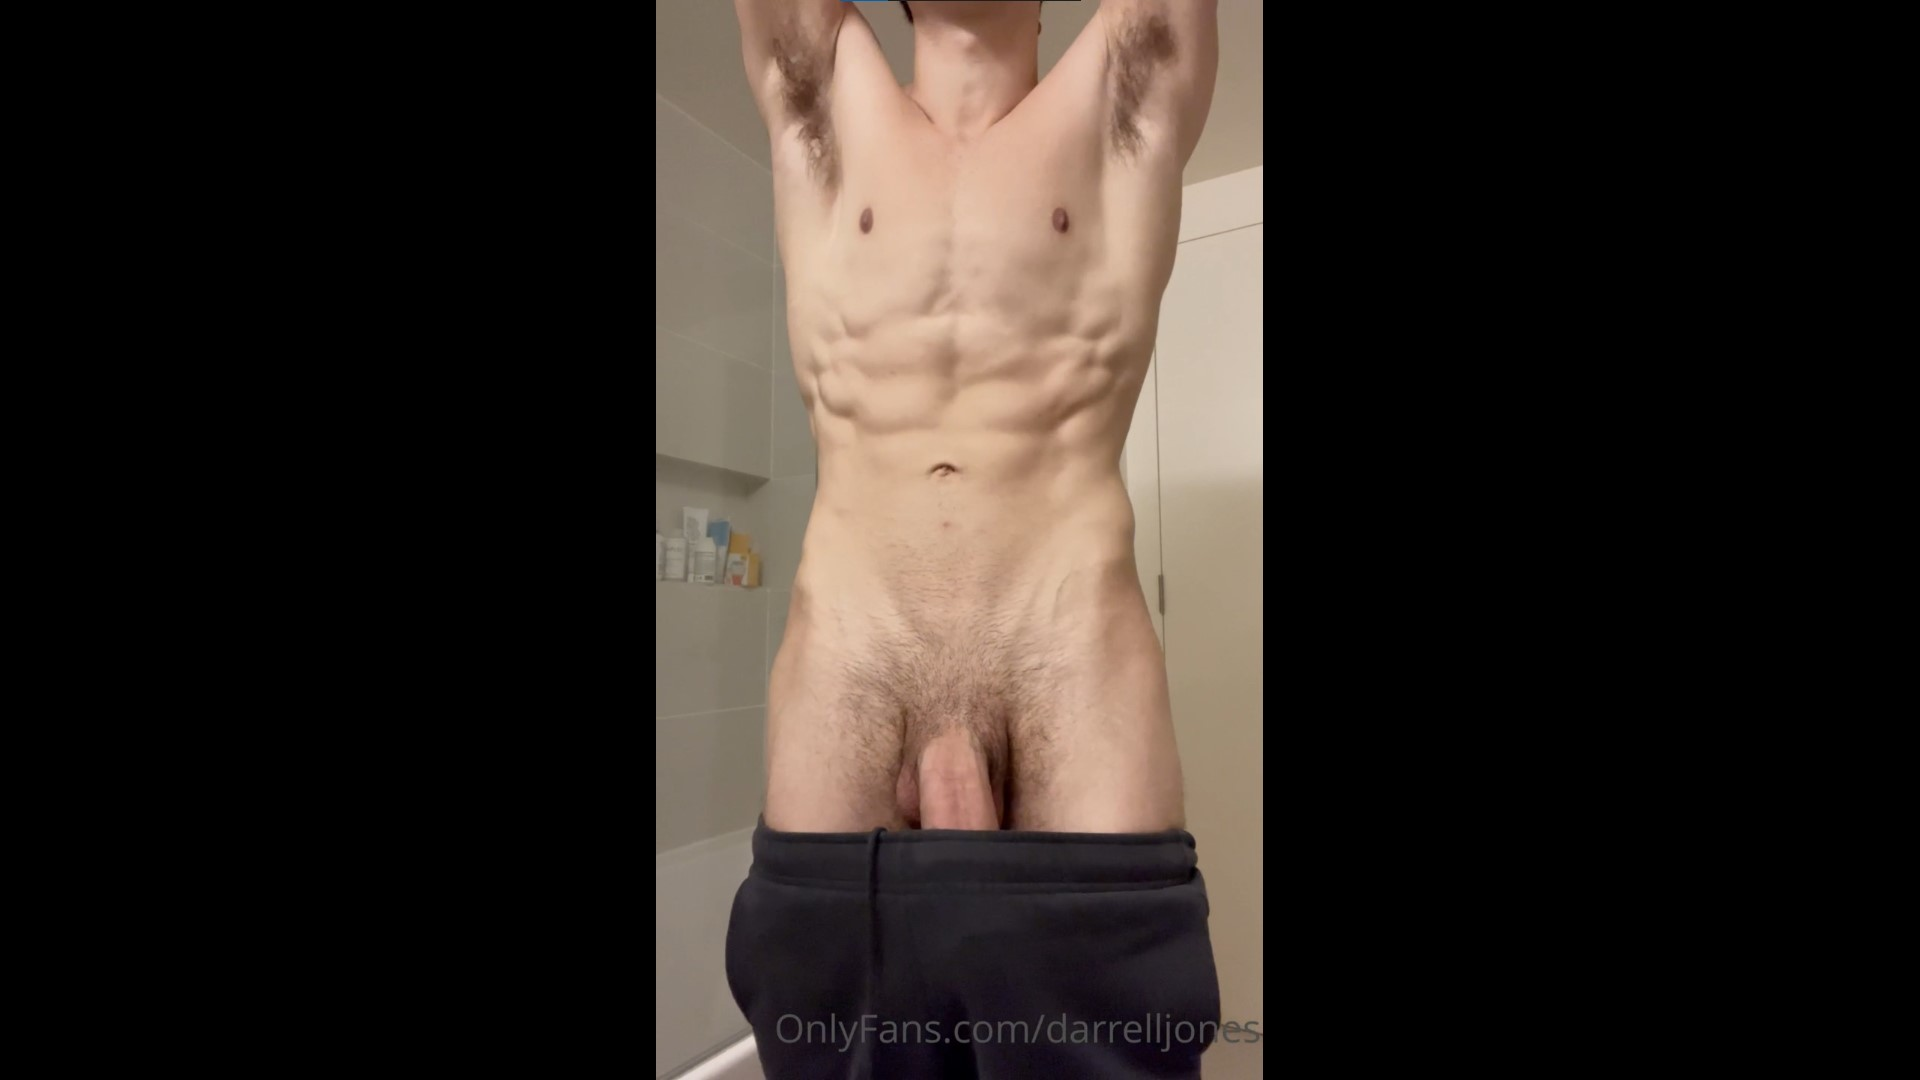 Quickly showing off my body and dick – darrelljones – Gay for Fans – gayforfans.com